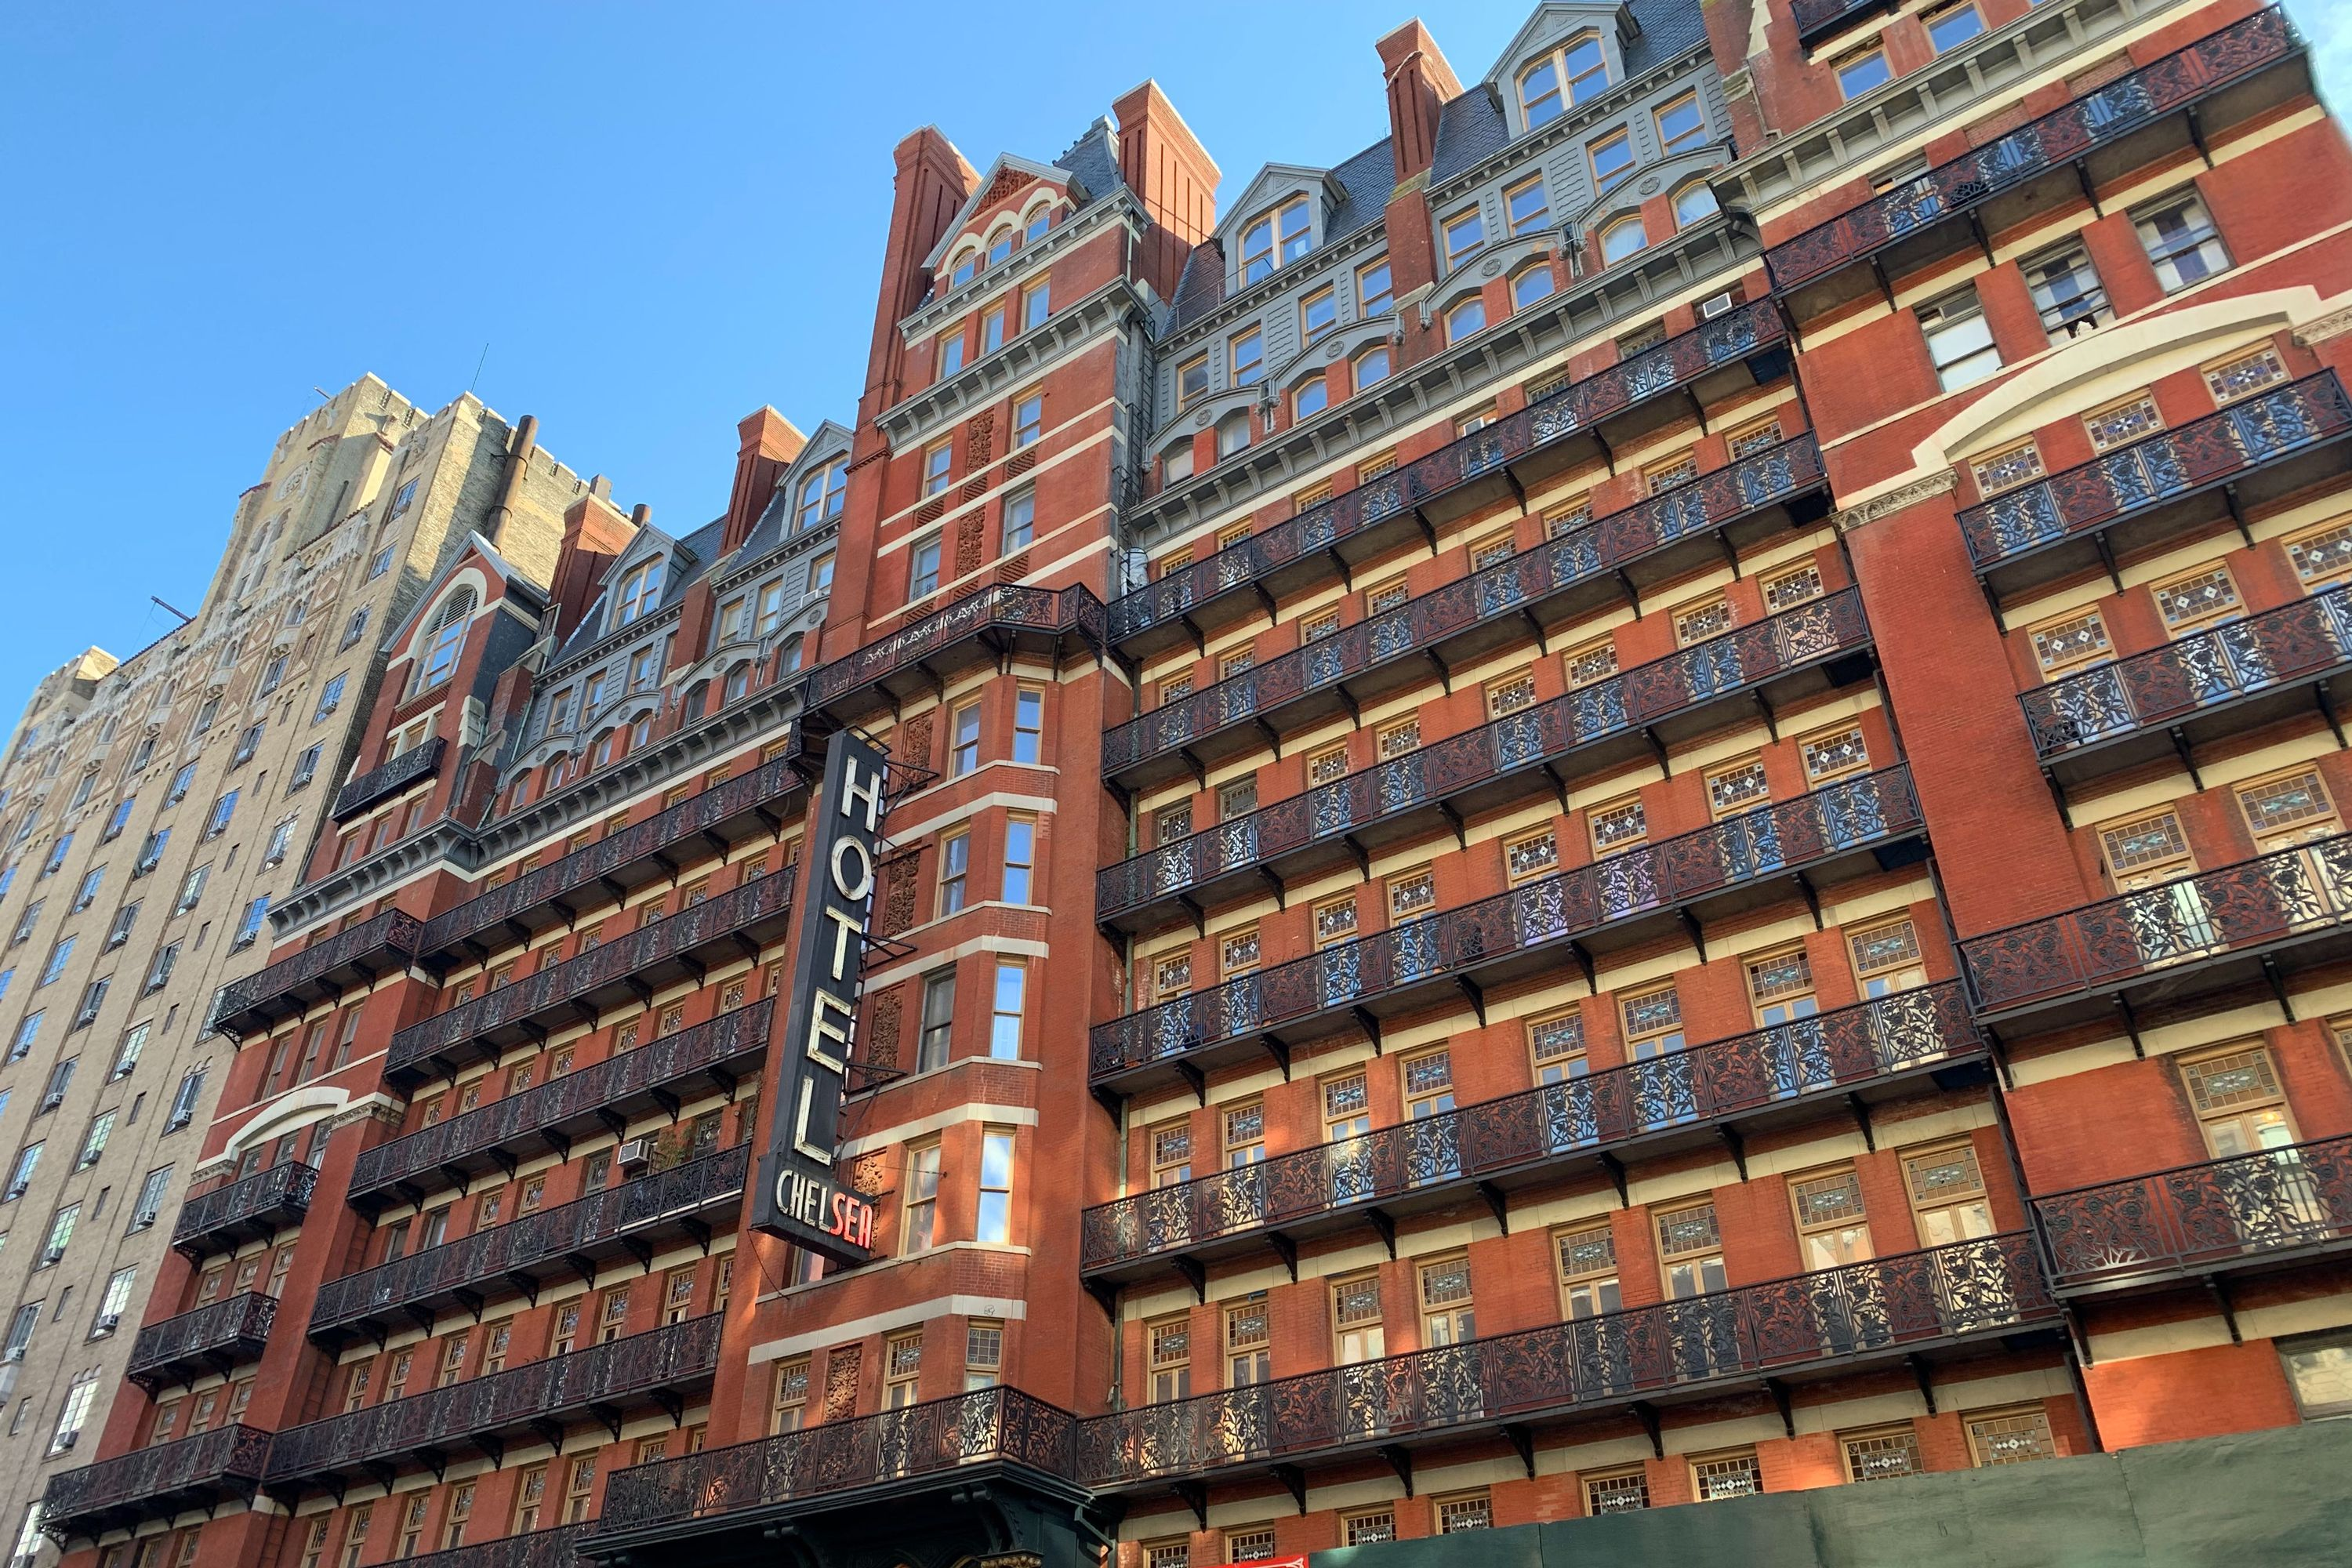 The Chelsea Hotel has been undergoing years of renovations.